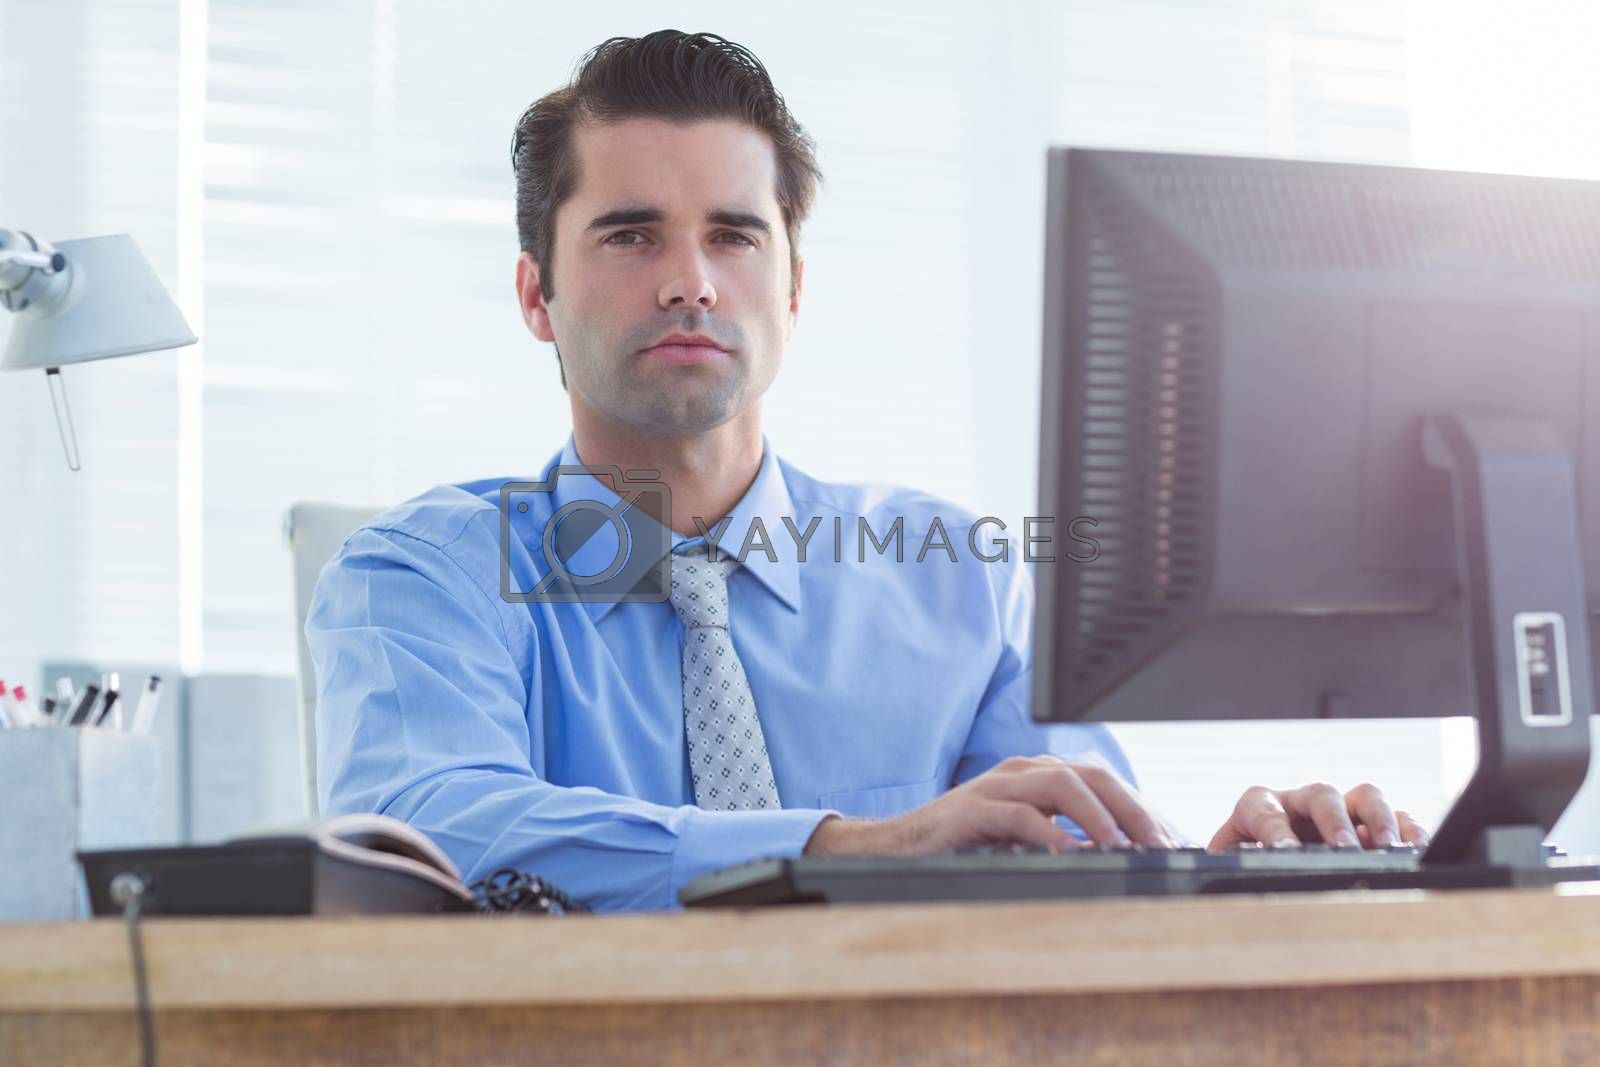 Royalty free image of Serious businessman using computer by Wavebreakmedia